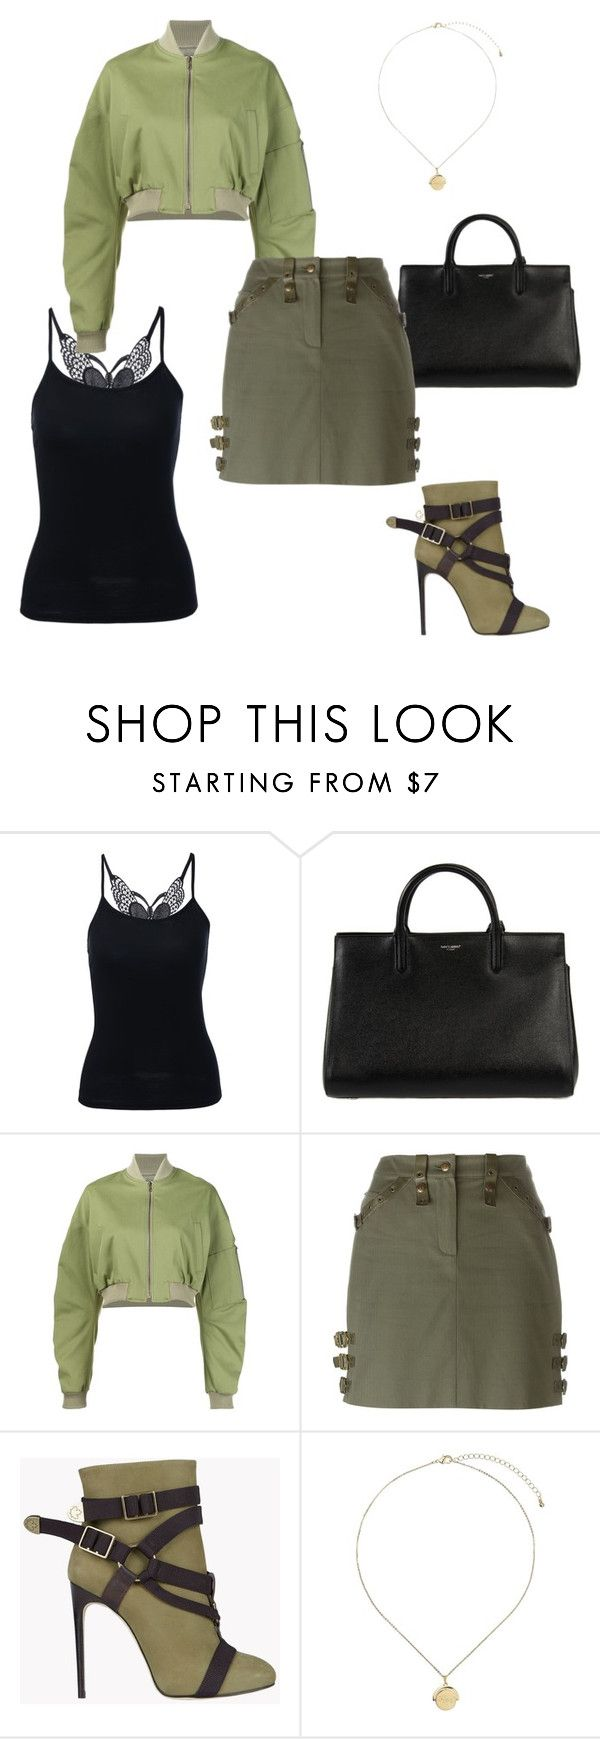 """""""Untitled #429"""" by aditi-sangwan ❤ liked on Polyvore featuring Yves Saint Laurent, Rosie Assoulin, Christian Dior, Dsquared2 and Miss Selfridge"""